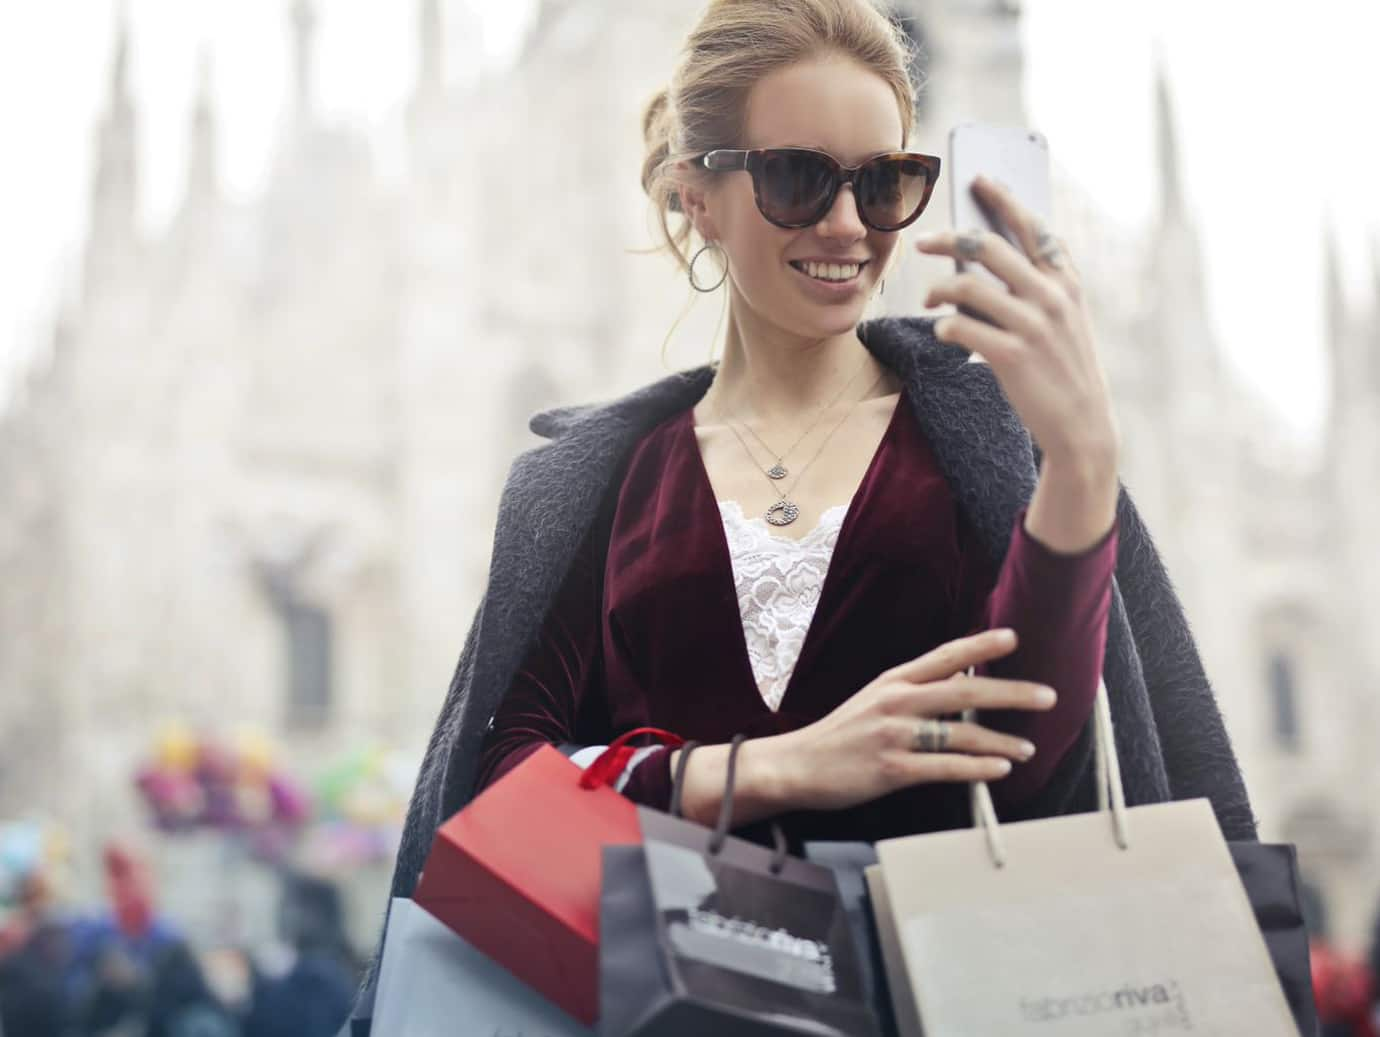 woman carrying shopping bags and looking at her phone